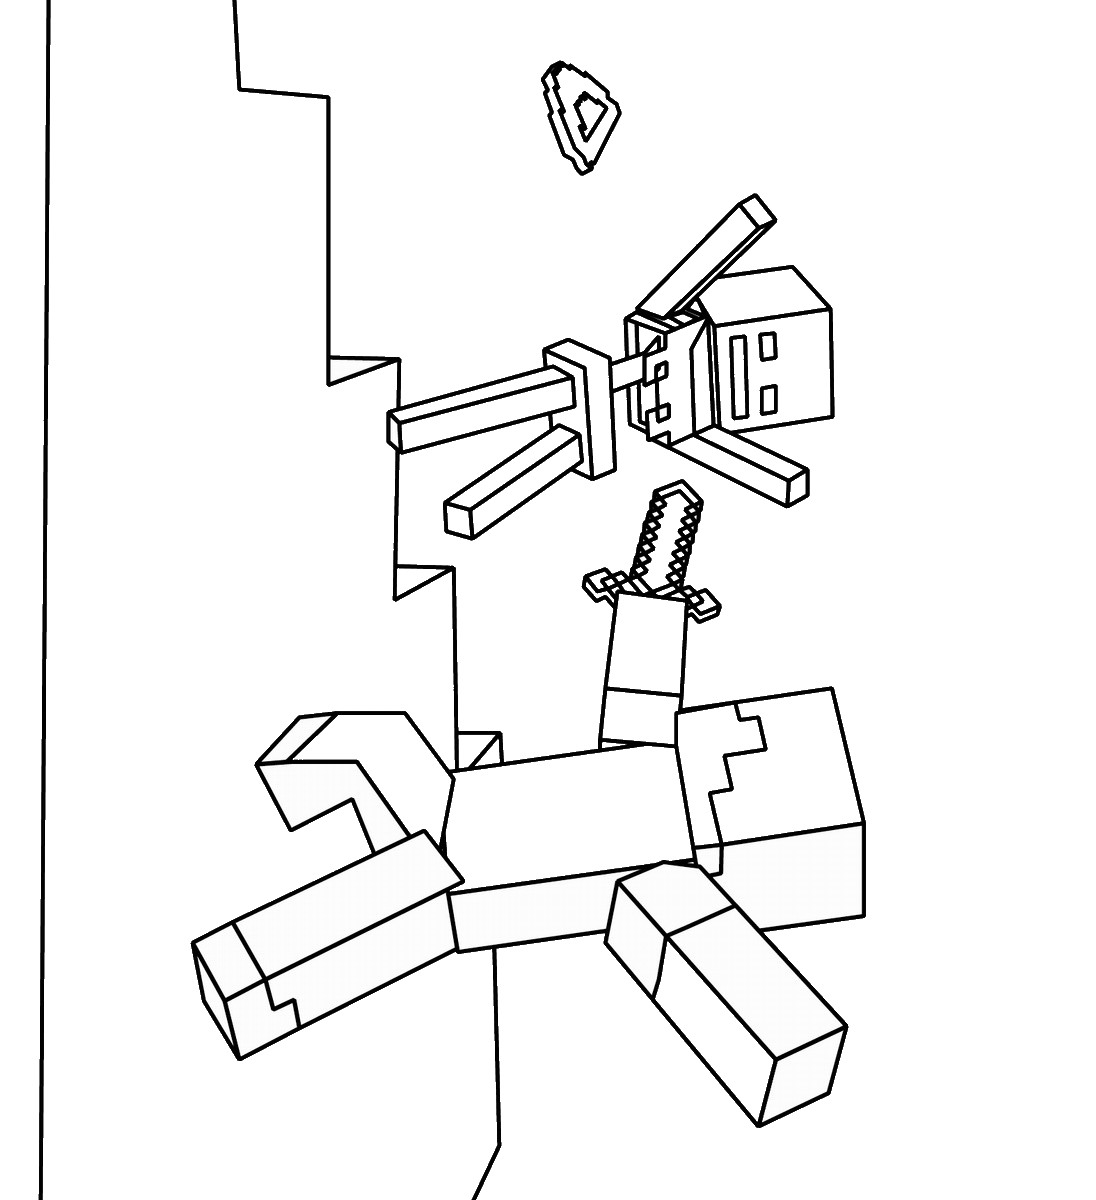 images of minecraft coloring pages minecraft coloring pages best coloring pages for kids images of minecraft coloring pages